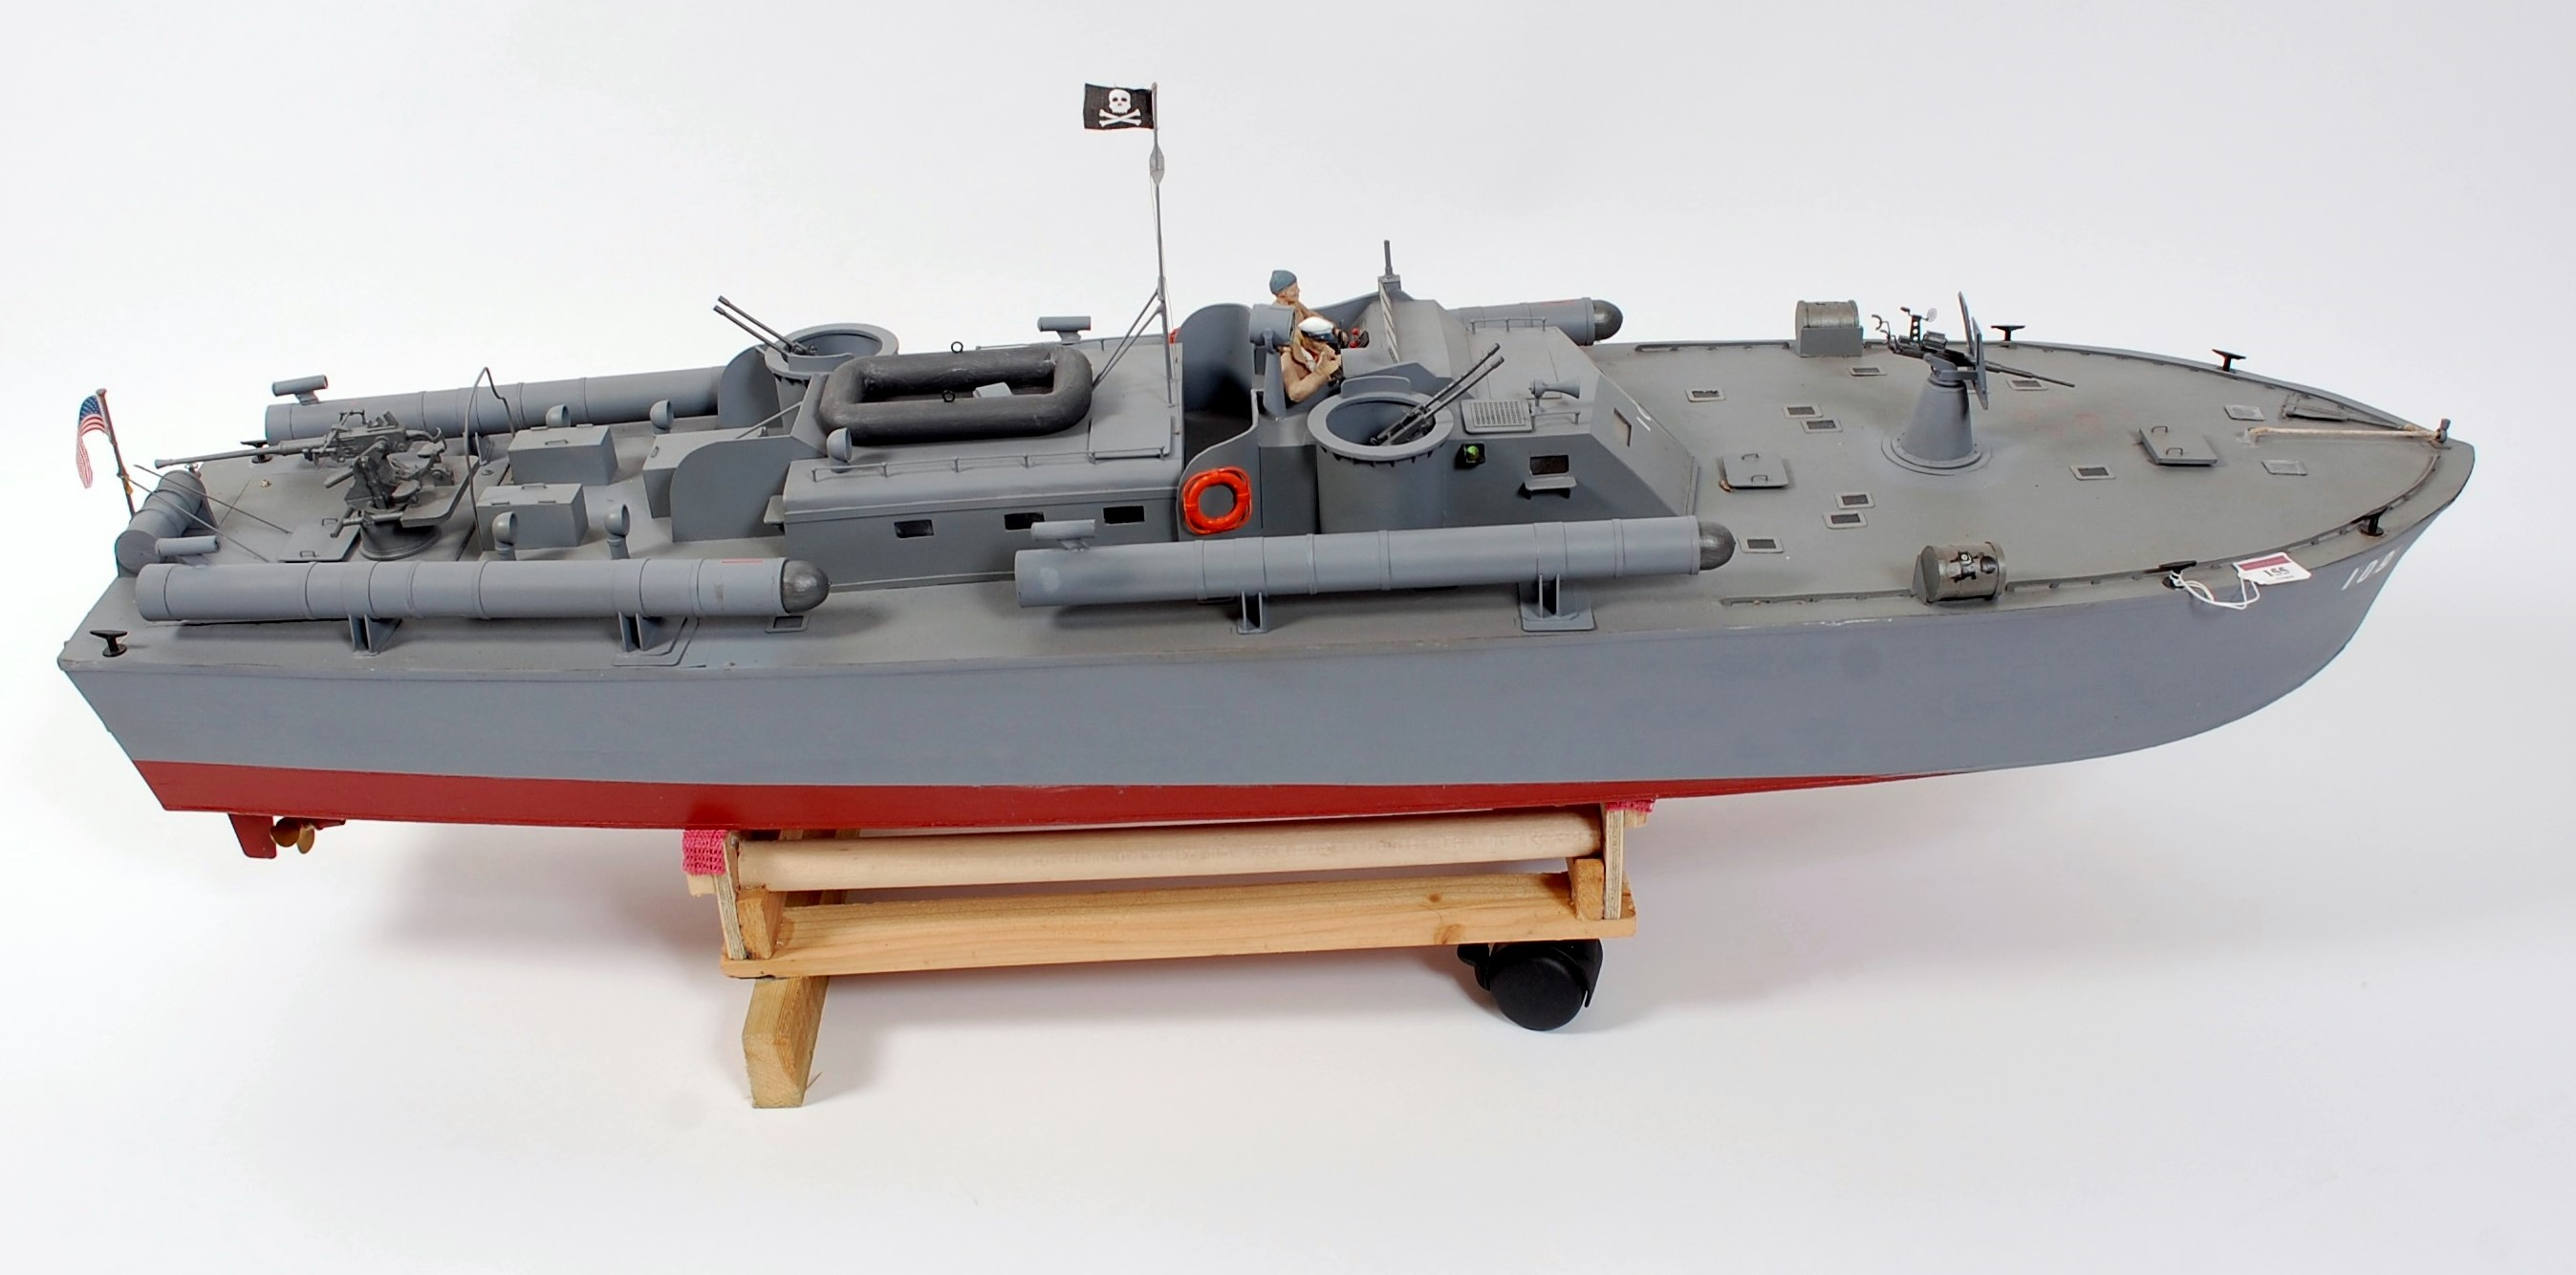 Lot 57 - A scratch built balsa wood model of a PT109 Torpedo boat, comprising grey and red hull and